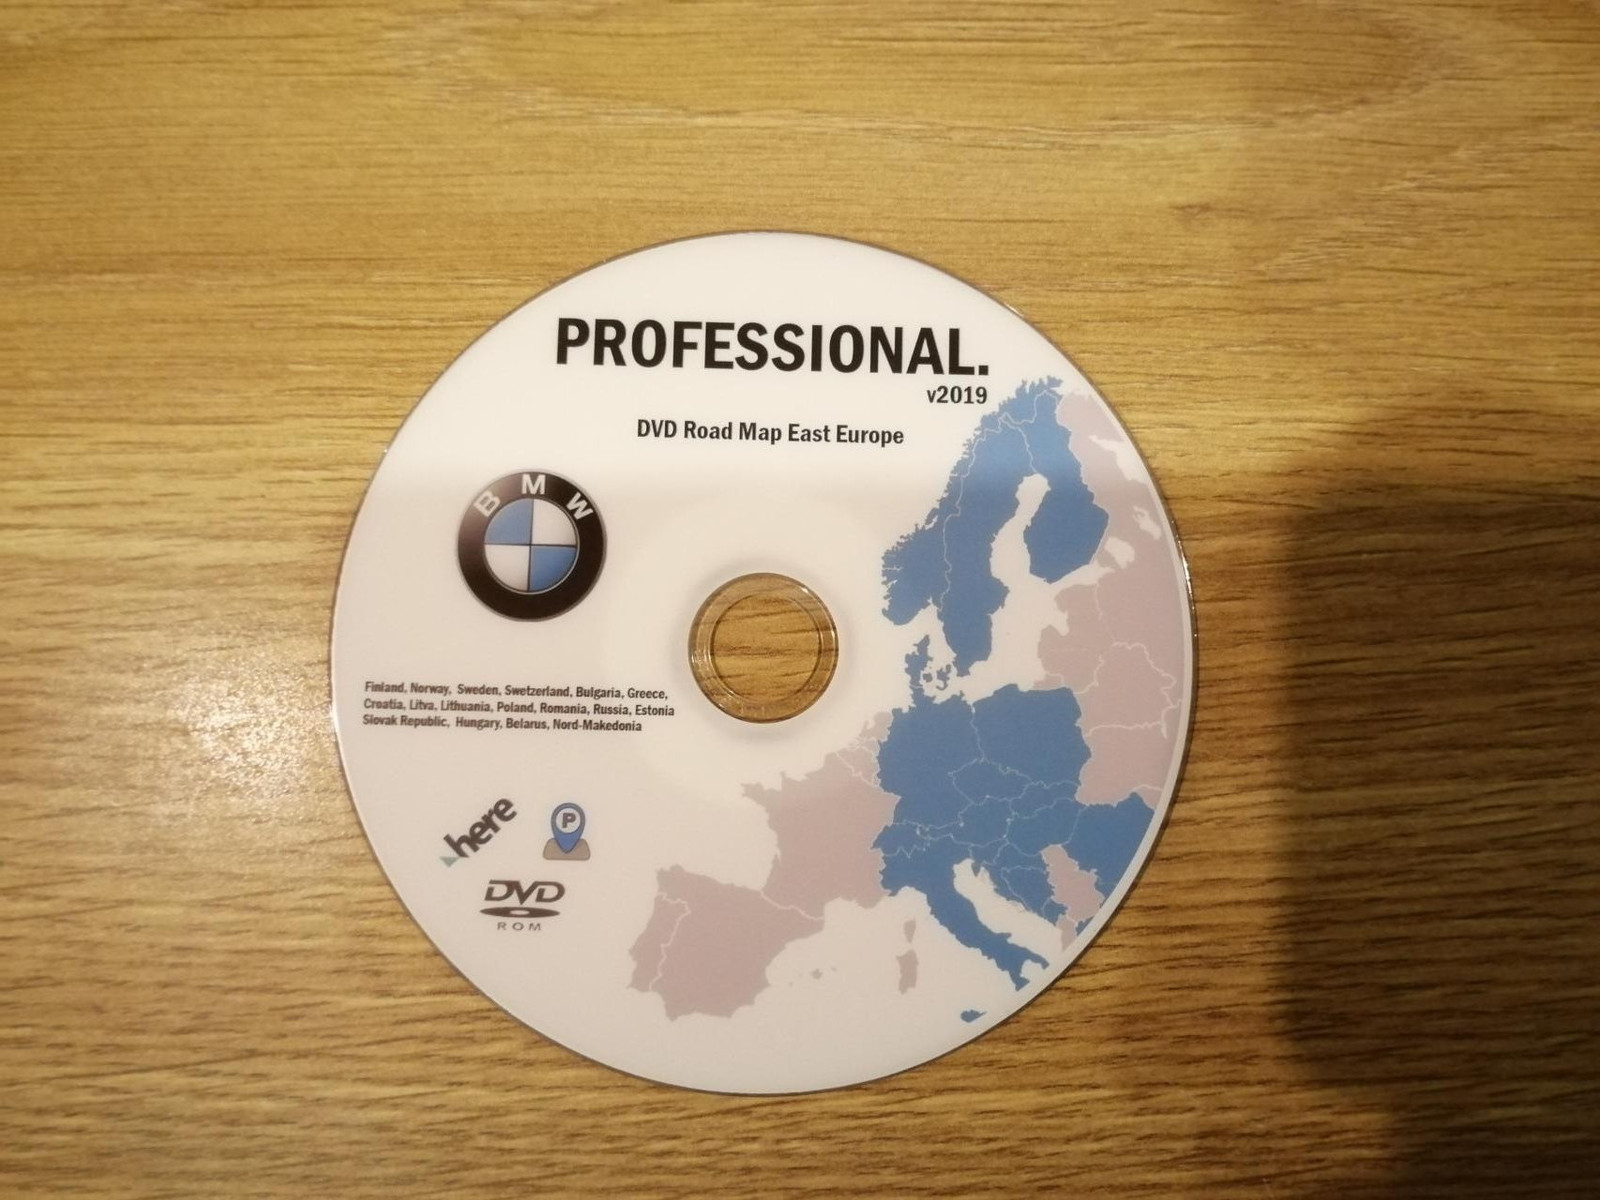 Bmw Update Professional 2019 Road Map East Europe Dvd Oppdatering